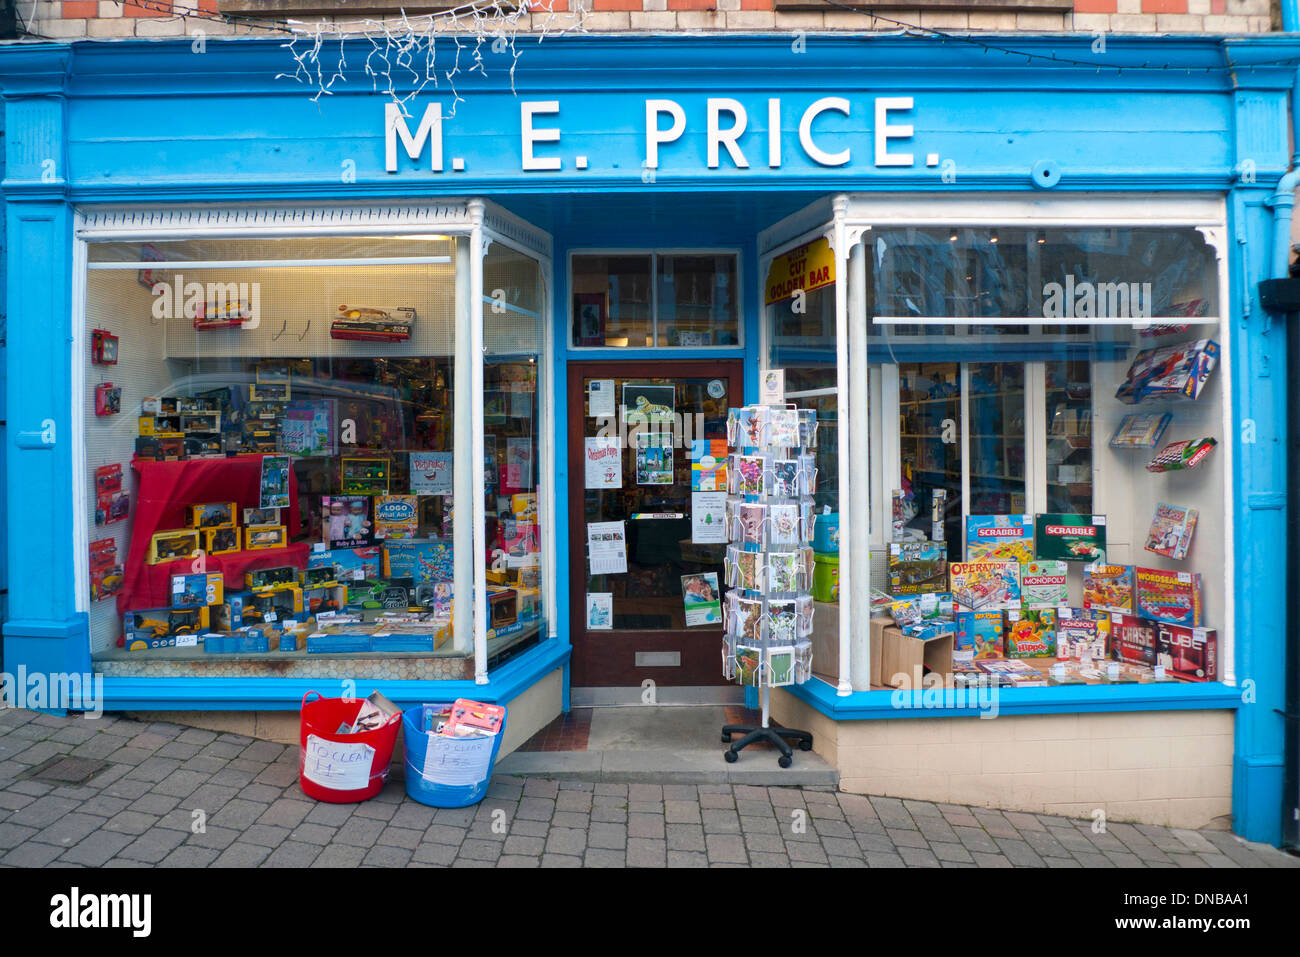 Exterior View Of Toys In M E Price Toy Shop Shopfront On High Street Stock Photo 64788473 Alamy